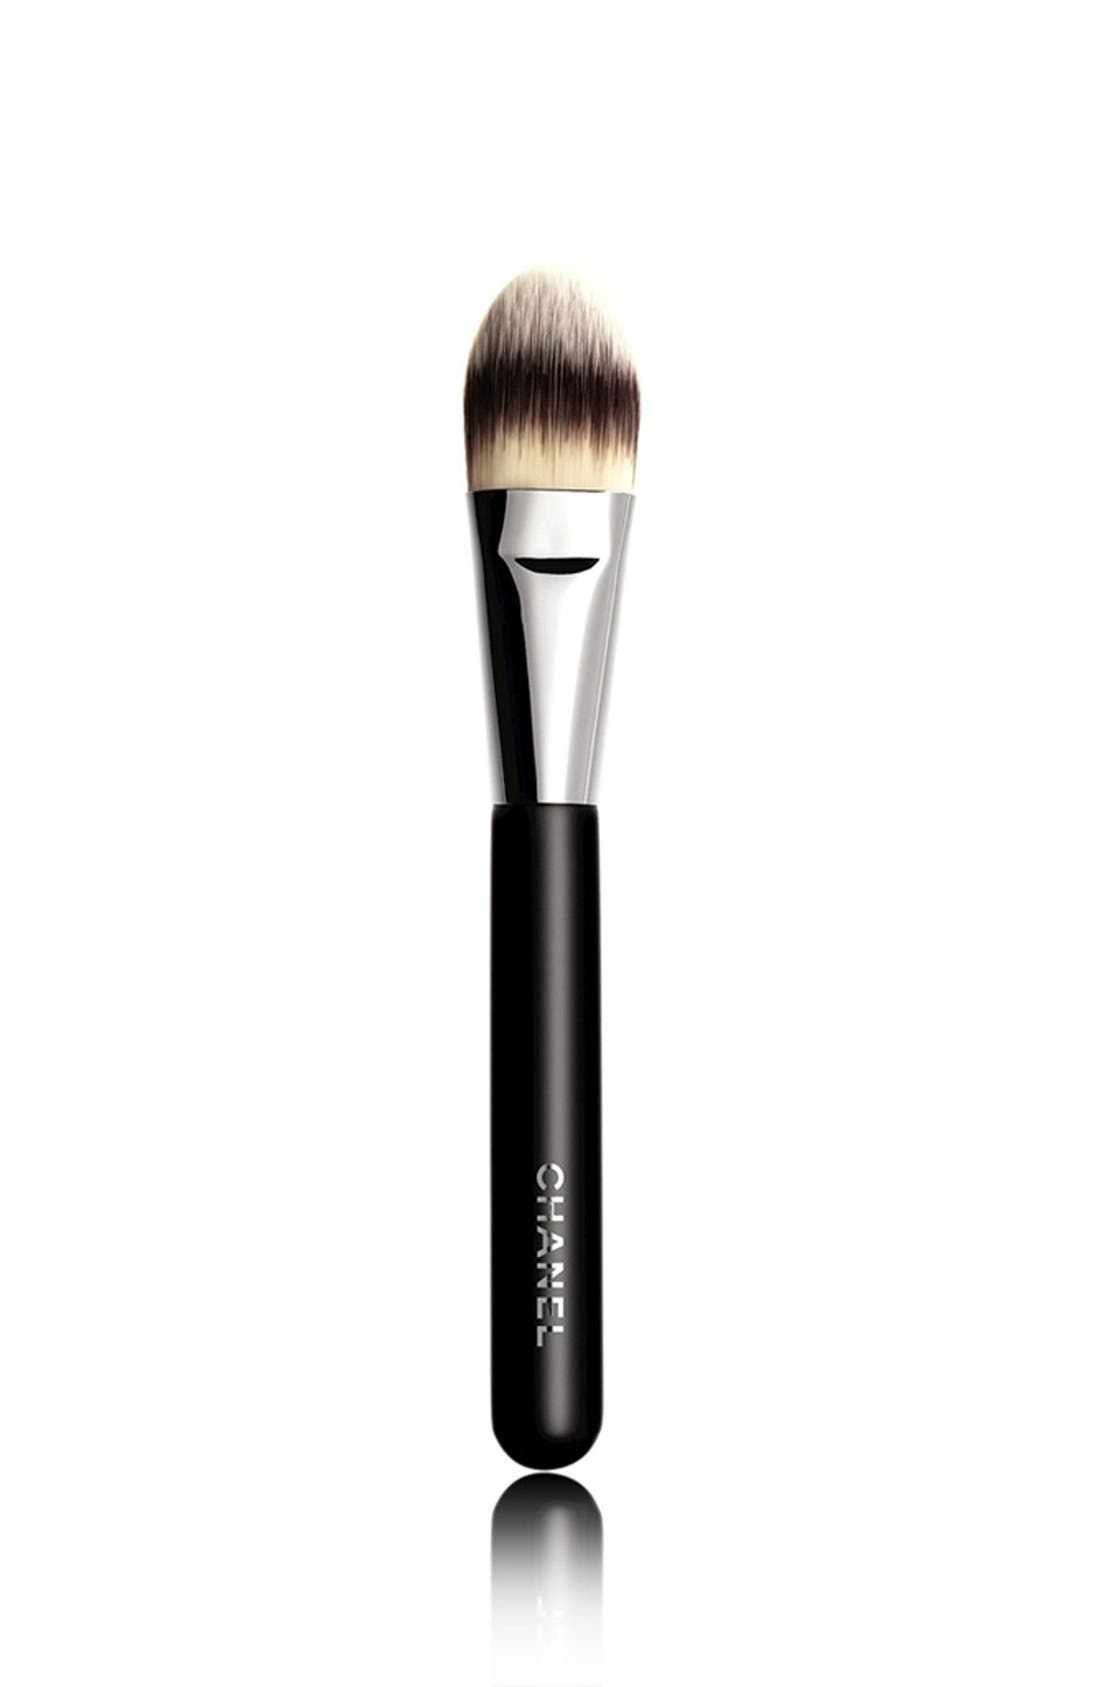 CHANEL PINCEAU FOND DE TEINT 